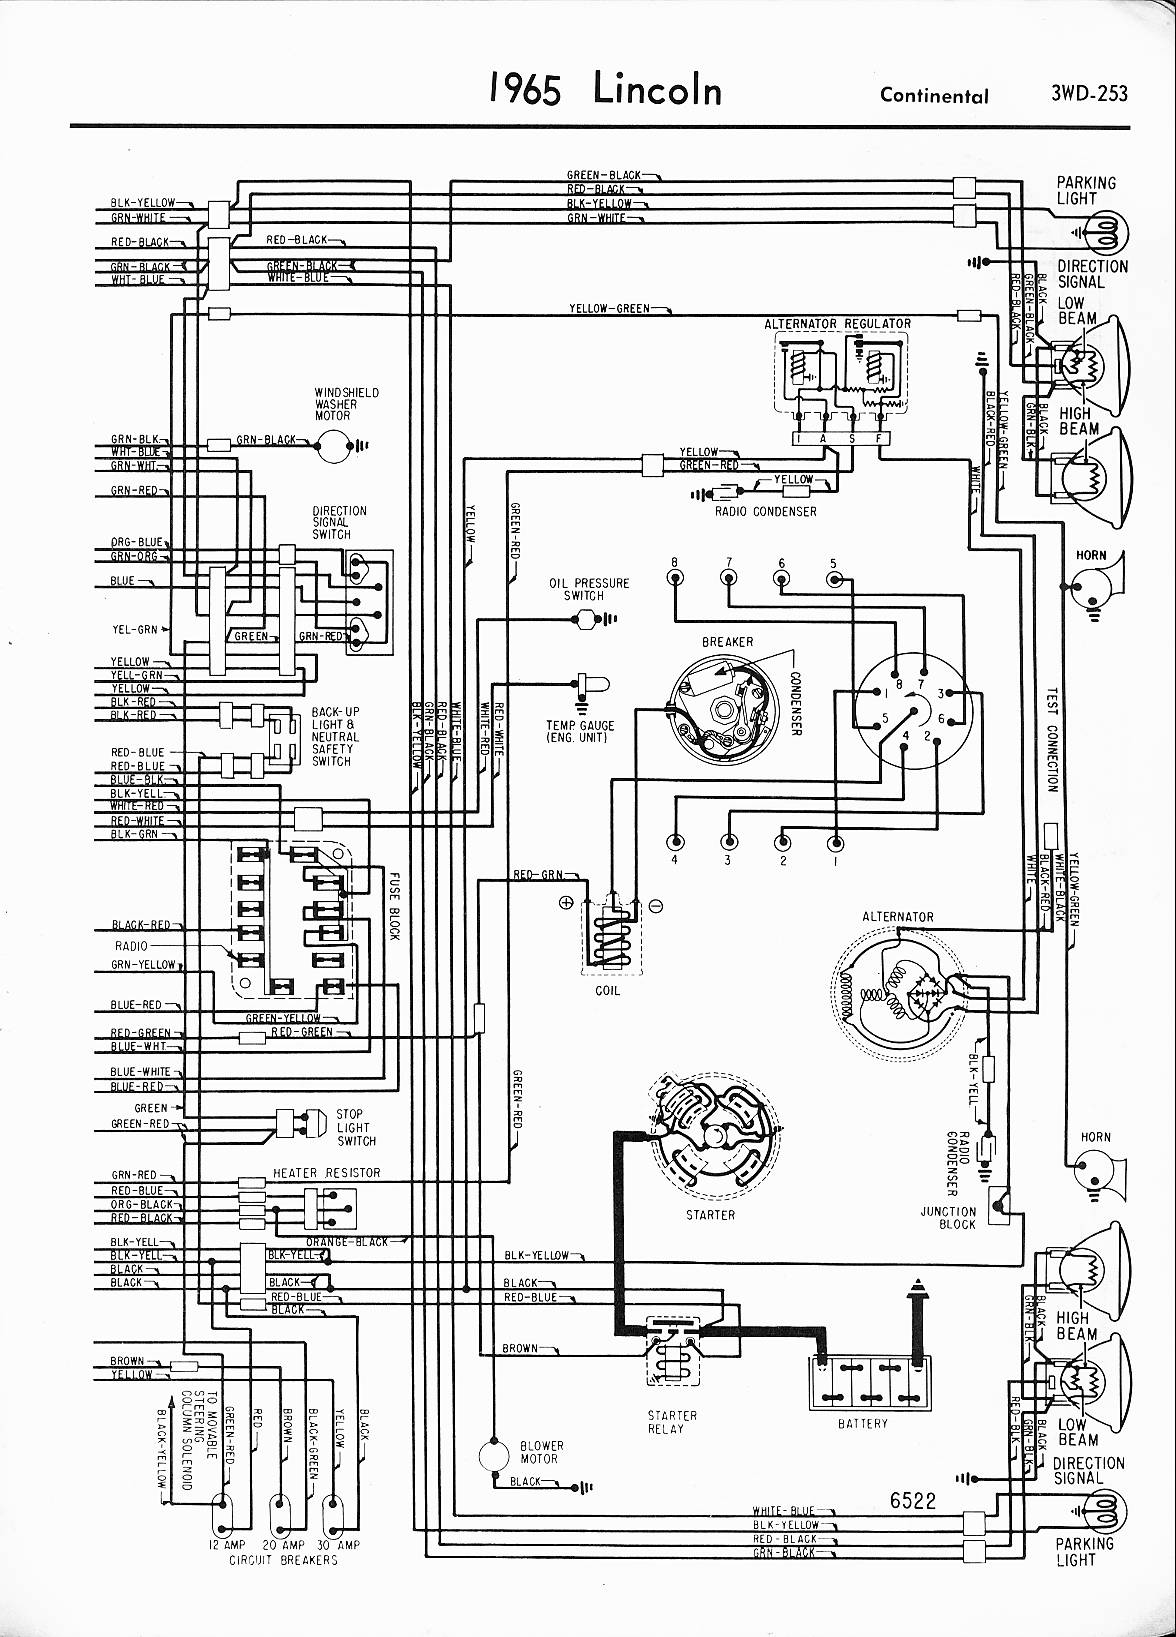 96 lincoln continental engine diagram wiring library 1991 Buick Park Avenue Wiring Diagram 1994 lincoln wiring diagrams simple wiring diagram lincoln continental horn schematics and diagram 1991 lincoln continental